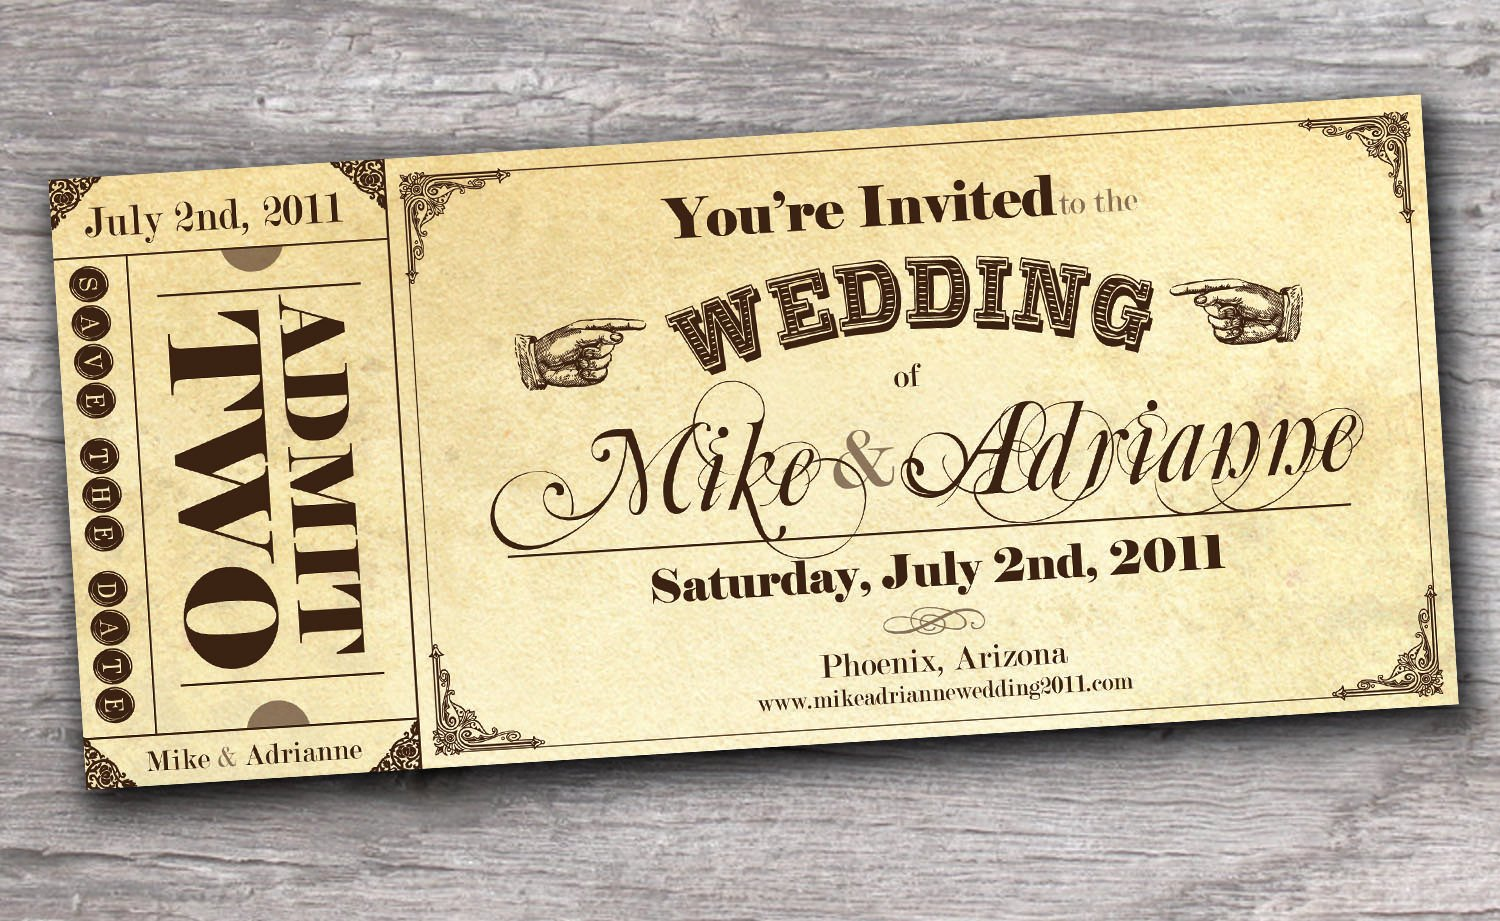 Vintage Movie Ticket Template Elegant Vintage Western Ticket Save the Date Wedding Invitation Sample